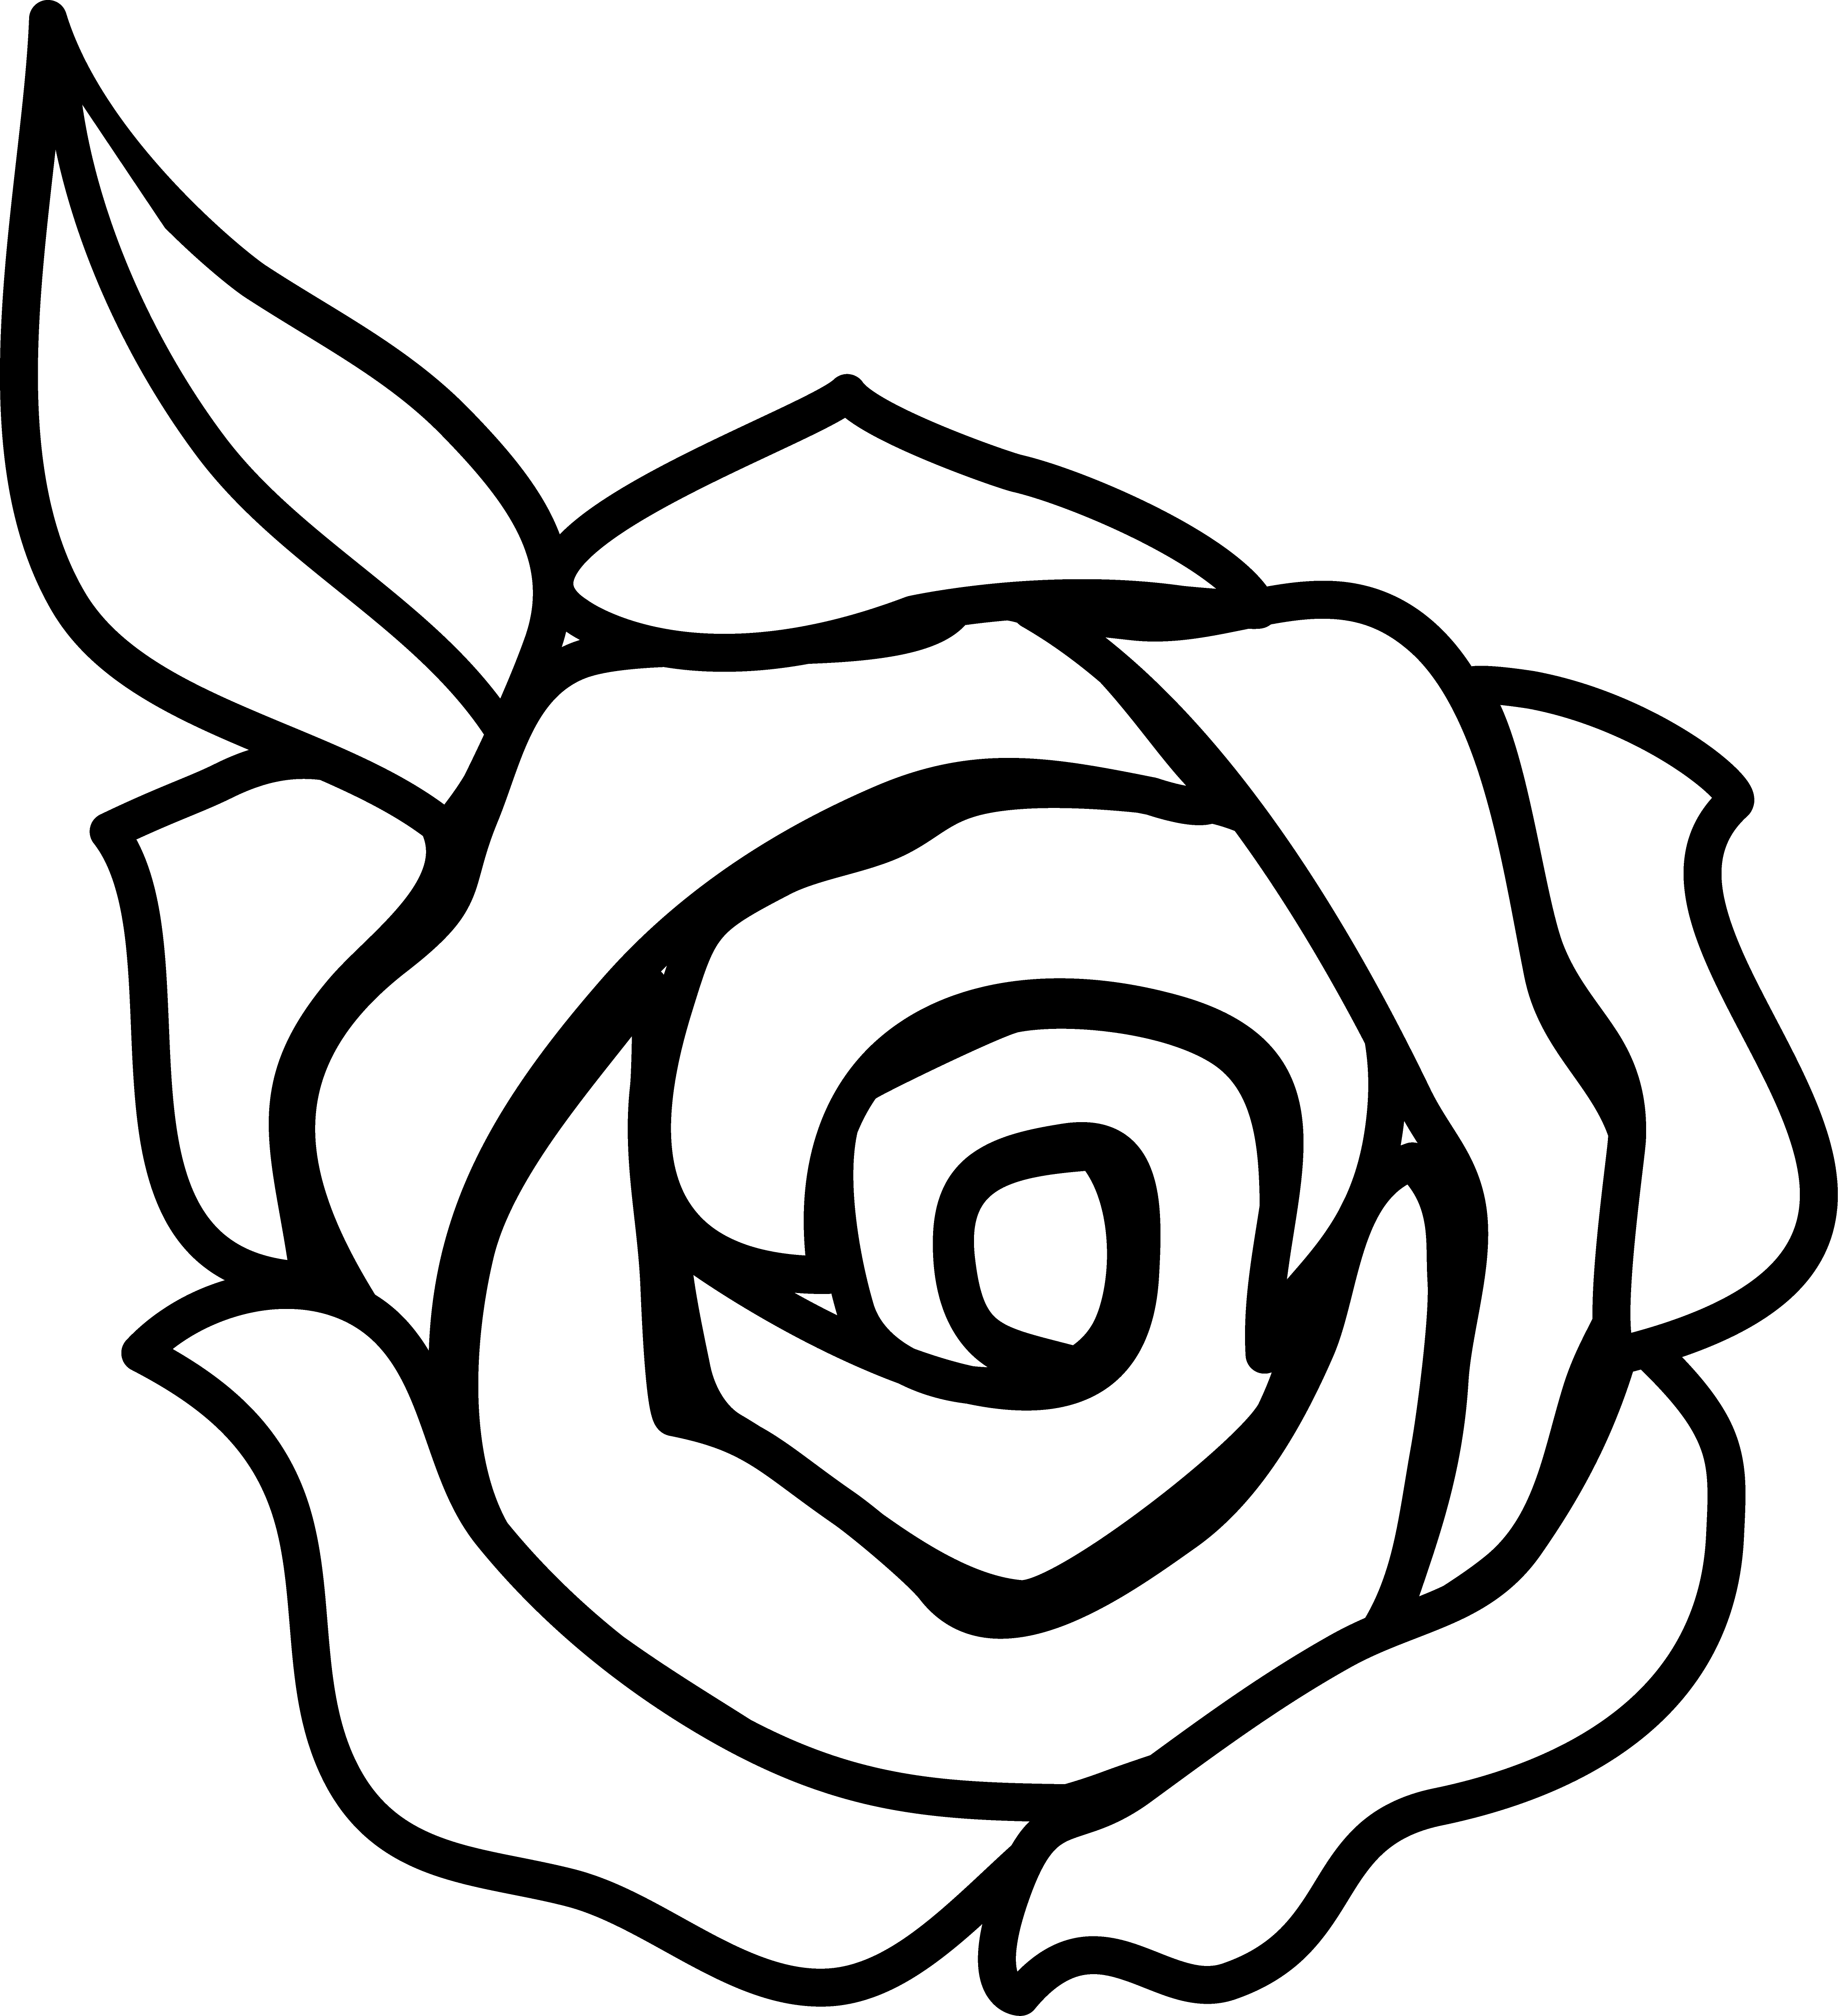 Black and white rose. Blossom drawing easy banner download